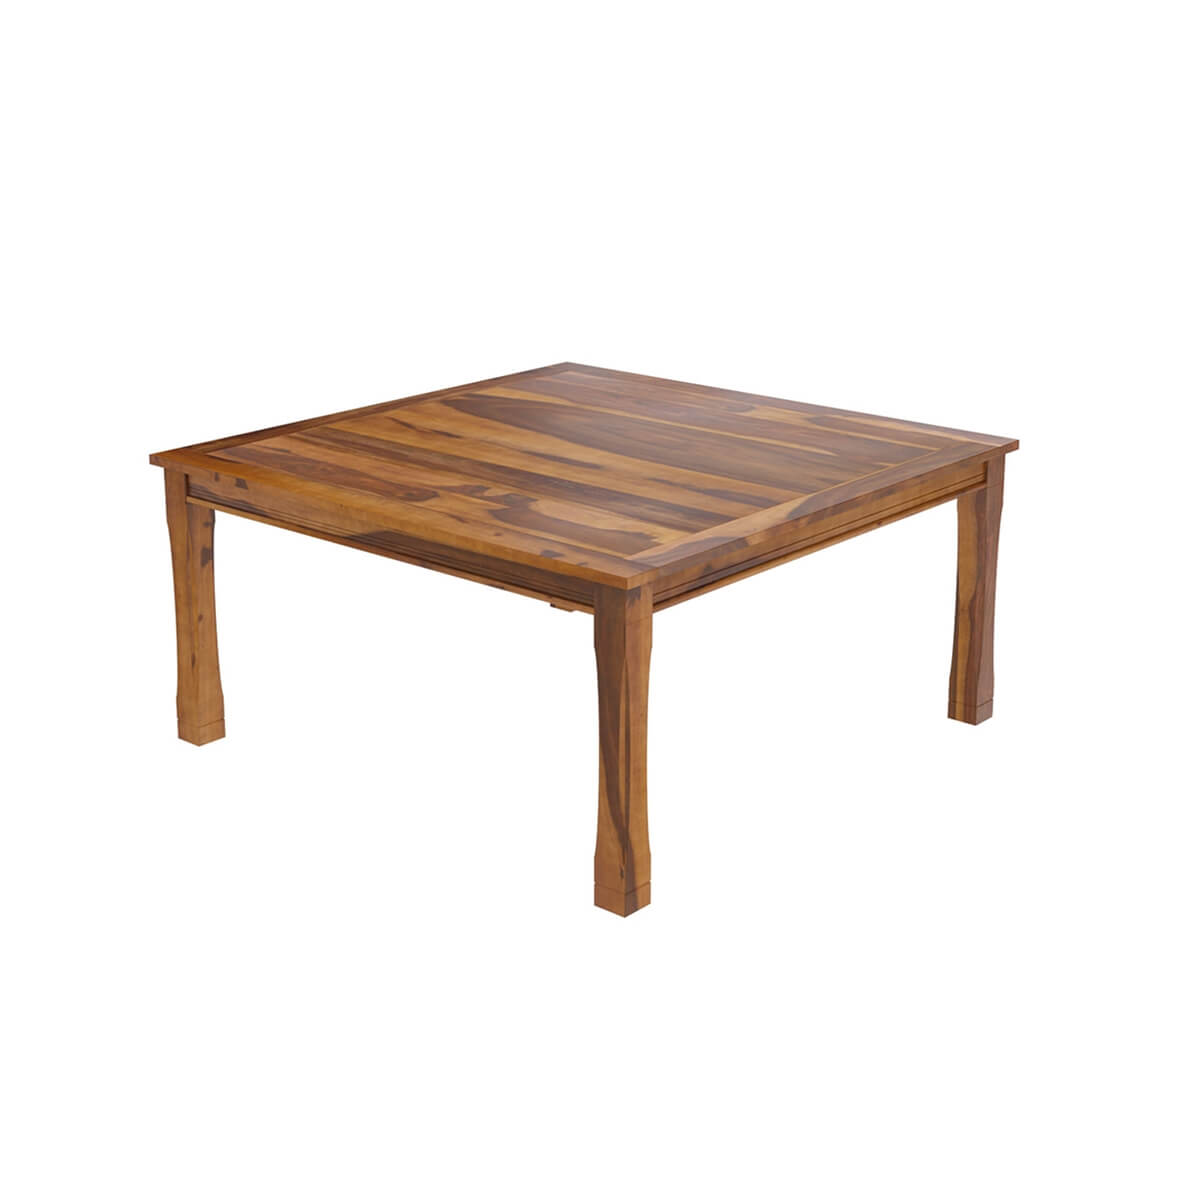 Dallas ranch transitional square wood dining room table for Square dining room table